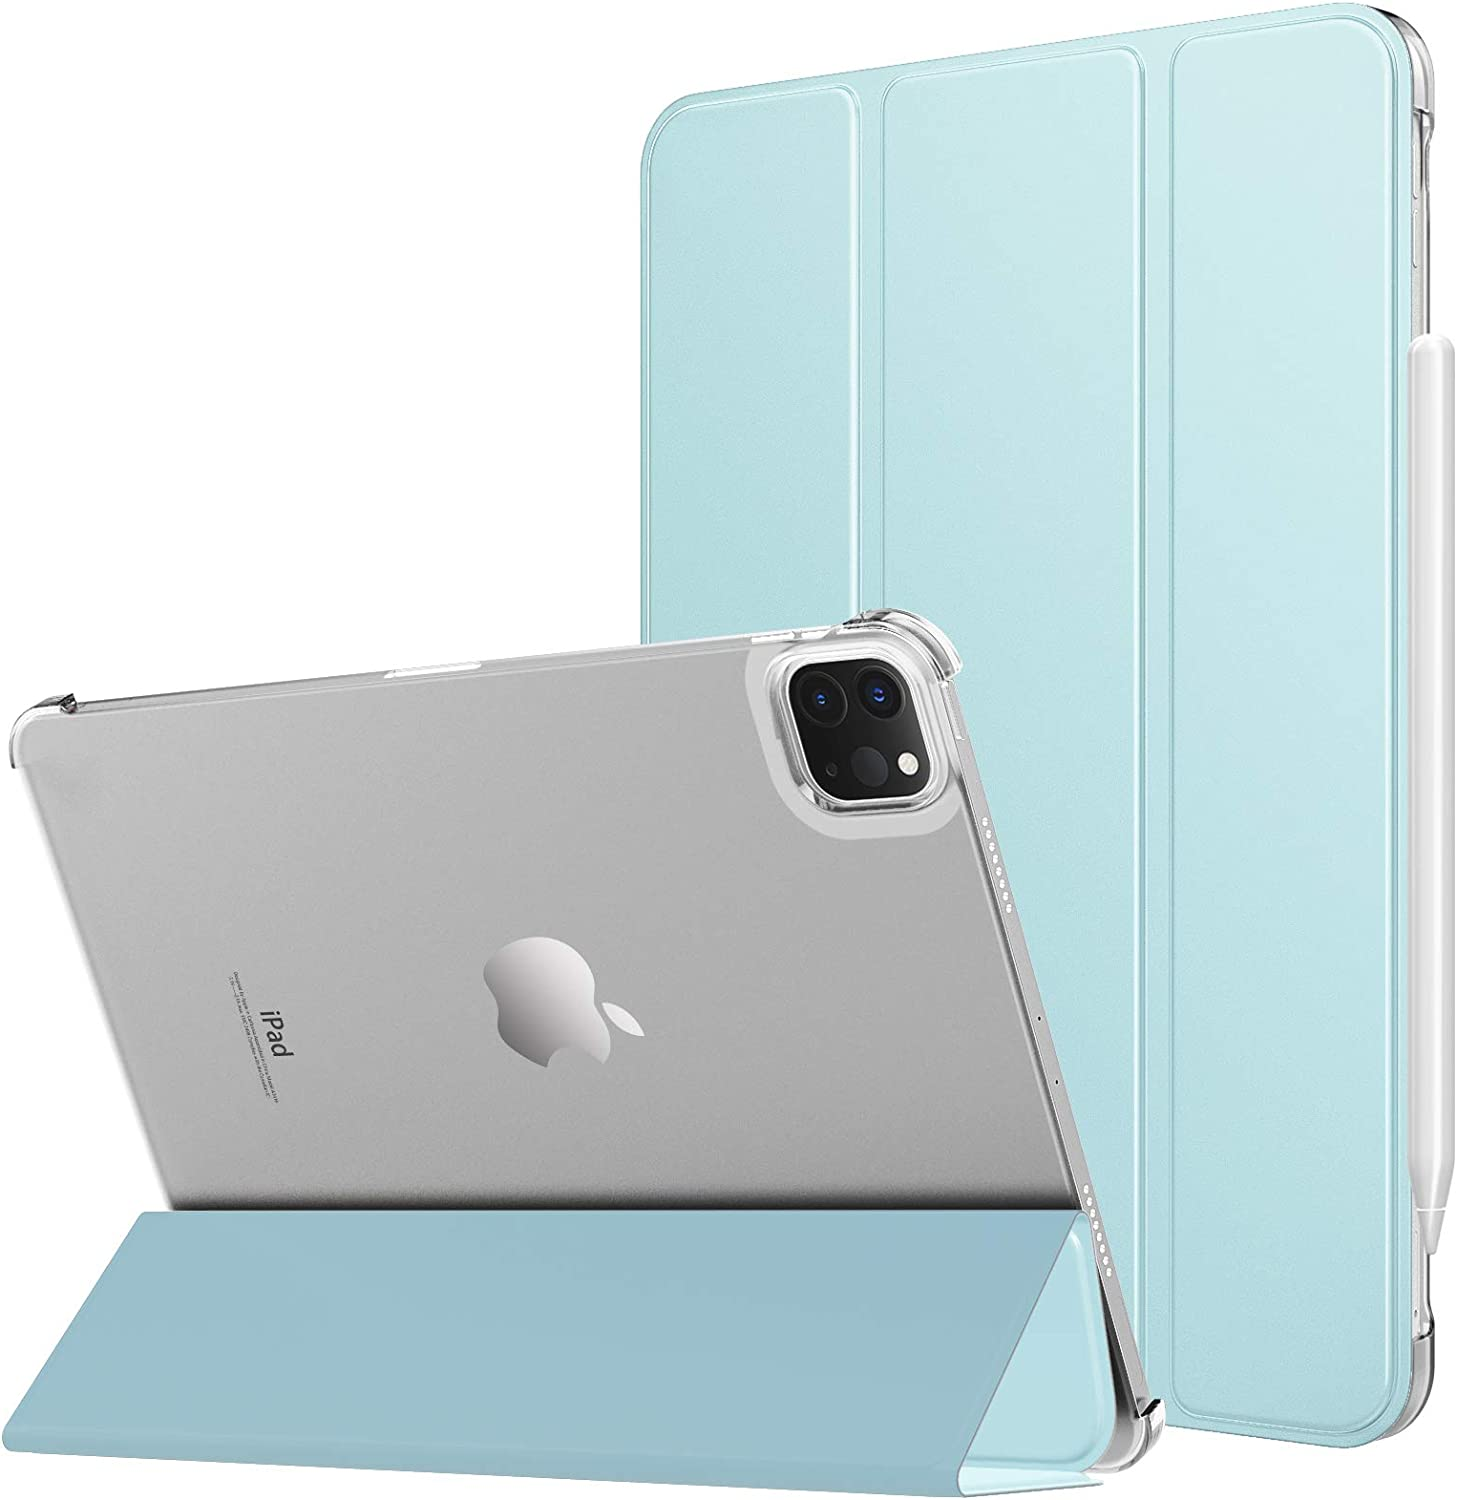 MoKo Case Fit New iPad Pro 11 Inch Case 2021 (3rd Gen), [Support Apple Pencil Charging] Slim Trifold Hard Back Shell Protective Smart Cover Fit iPad Pro 11